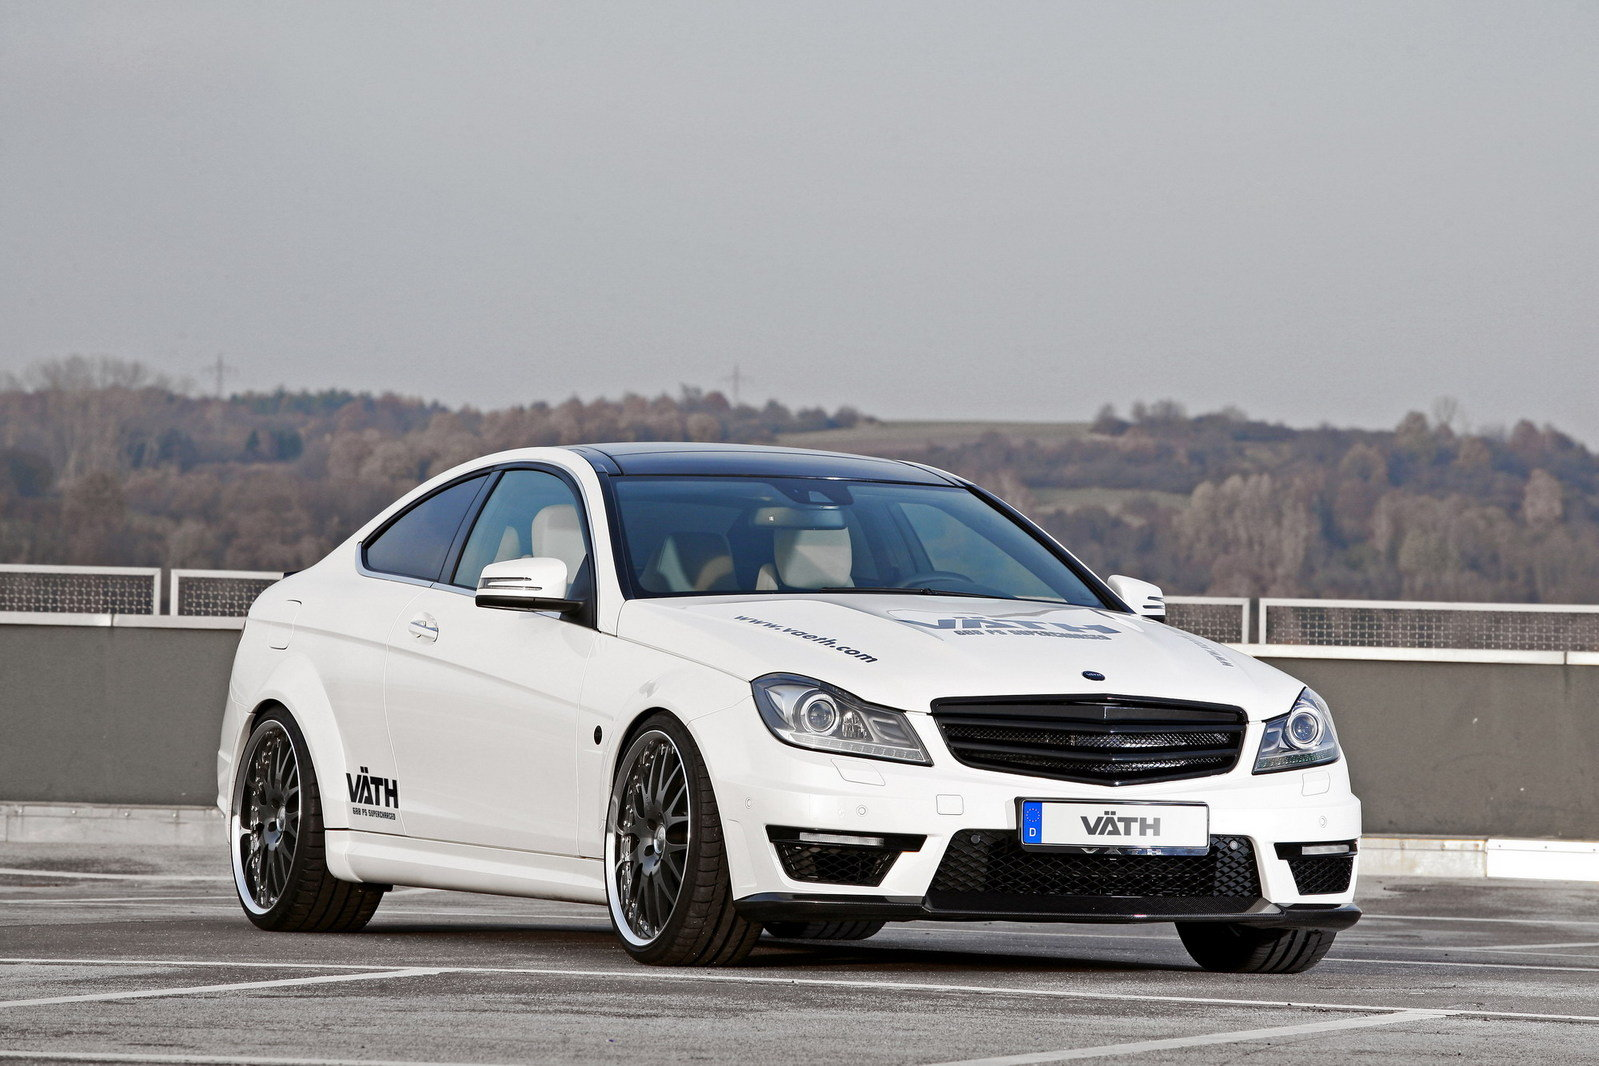 2012 Mercedes C63 Amg Coupe V63 Supercharged By Vath Top